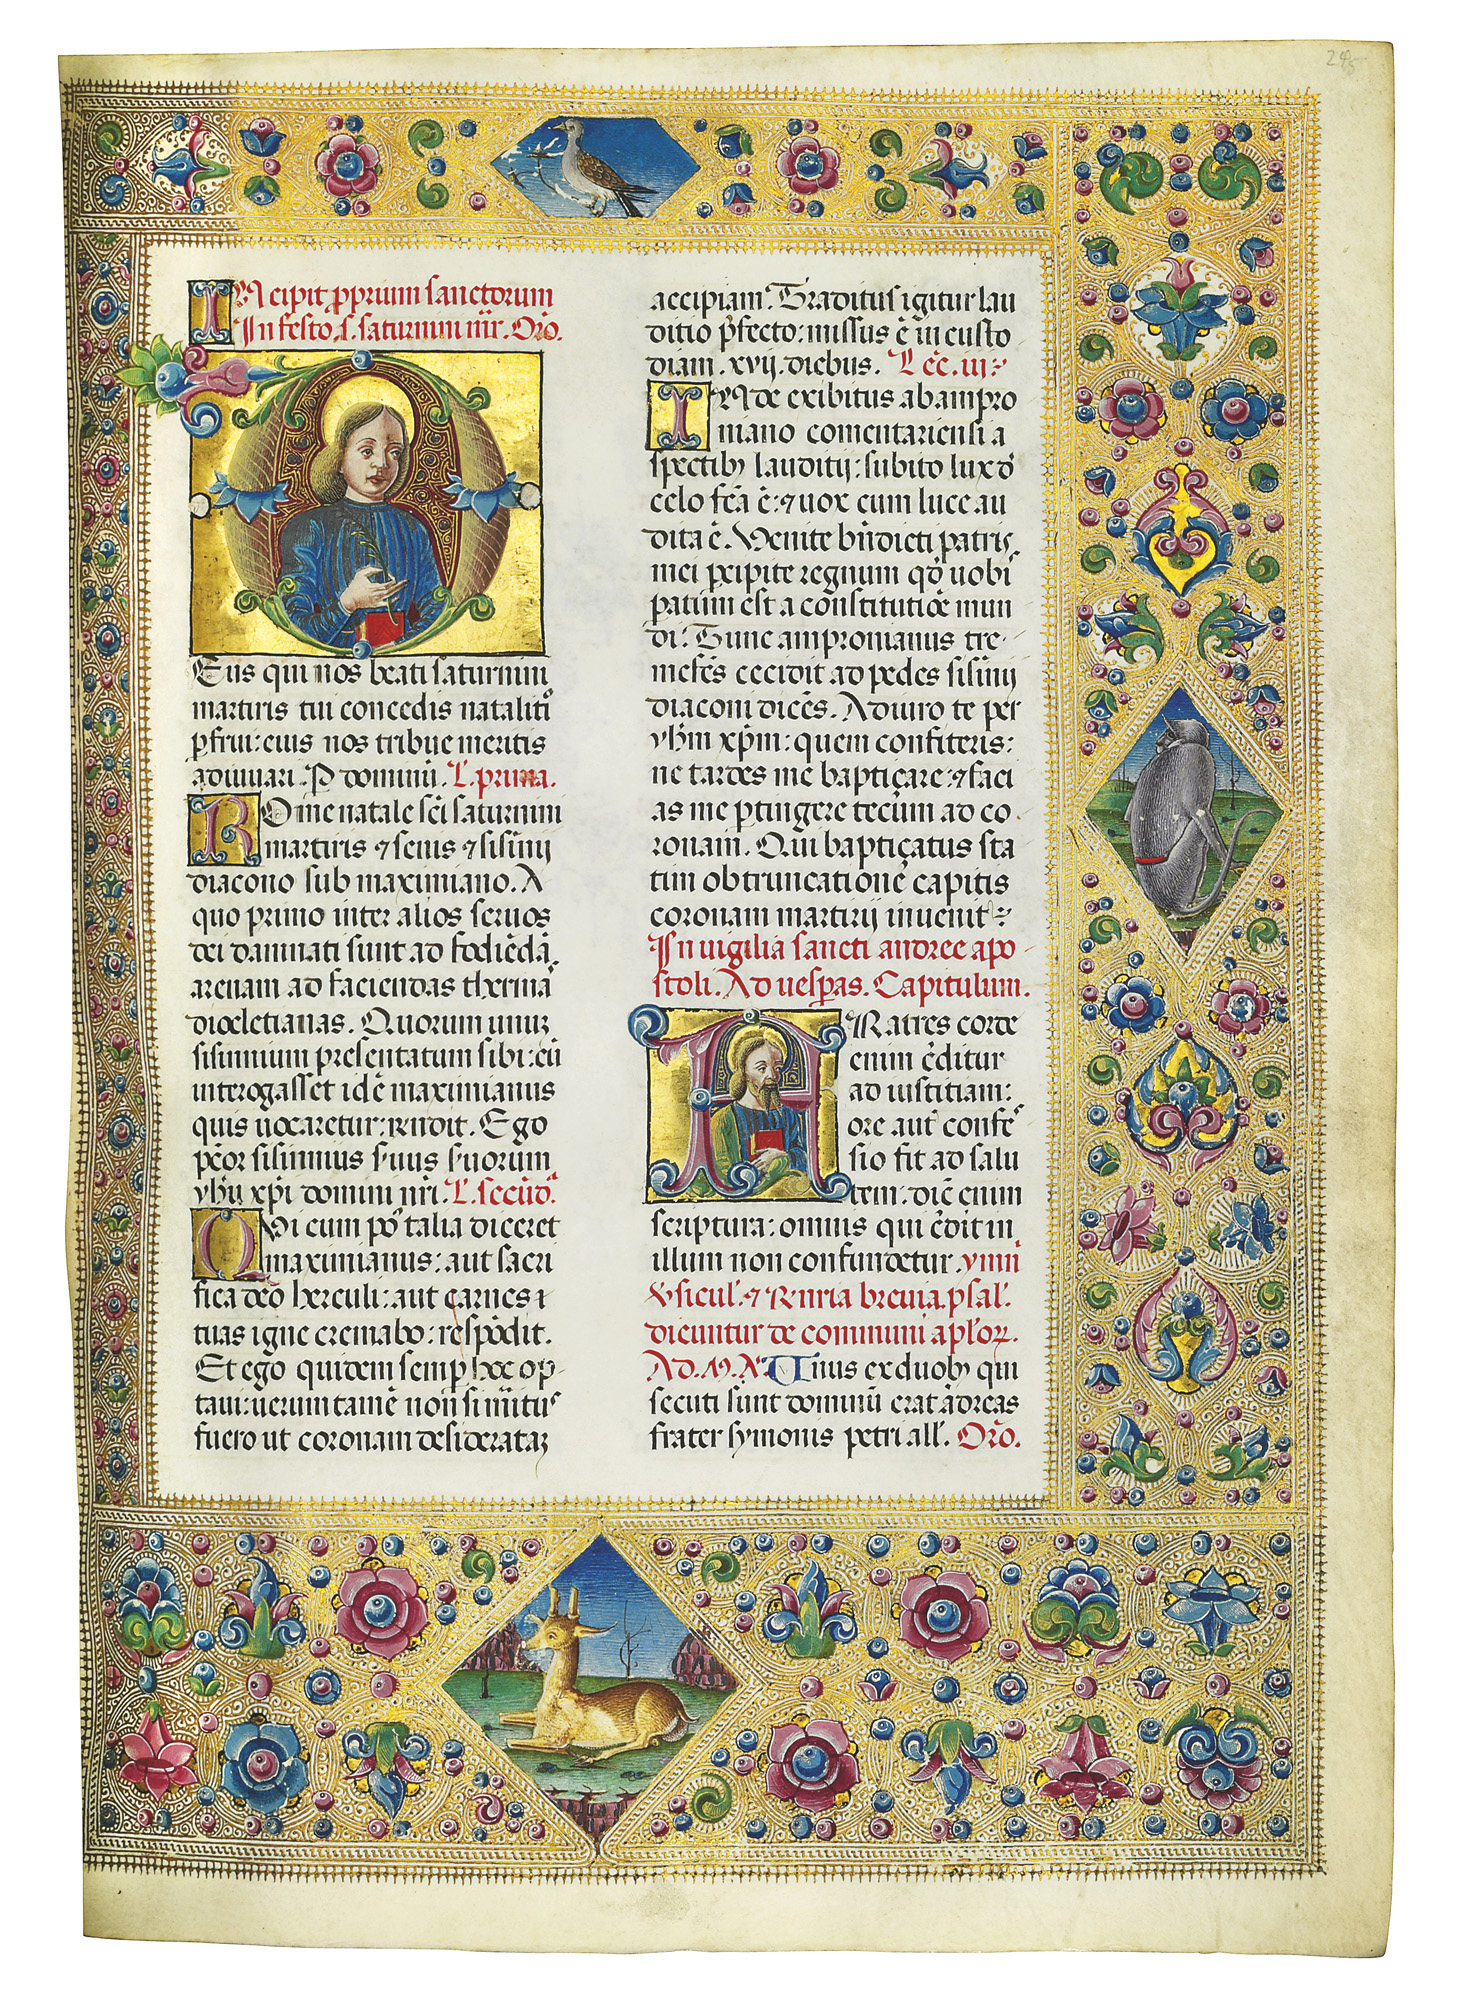 THE LIBANORI BREVIARY, use of